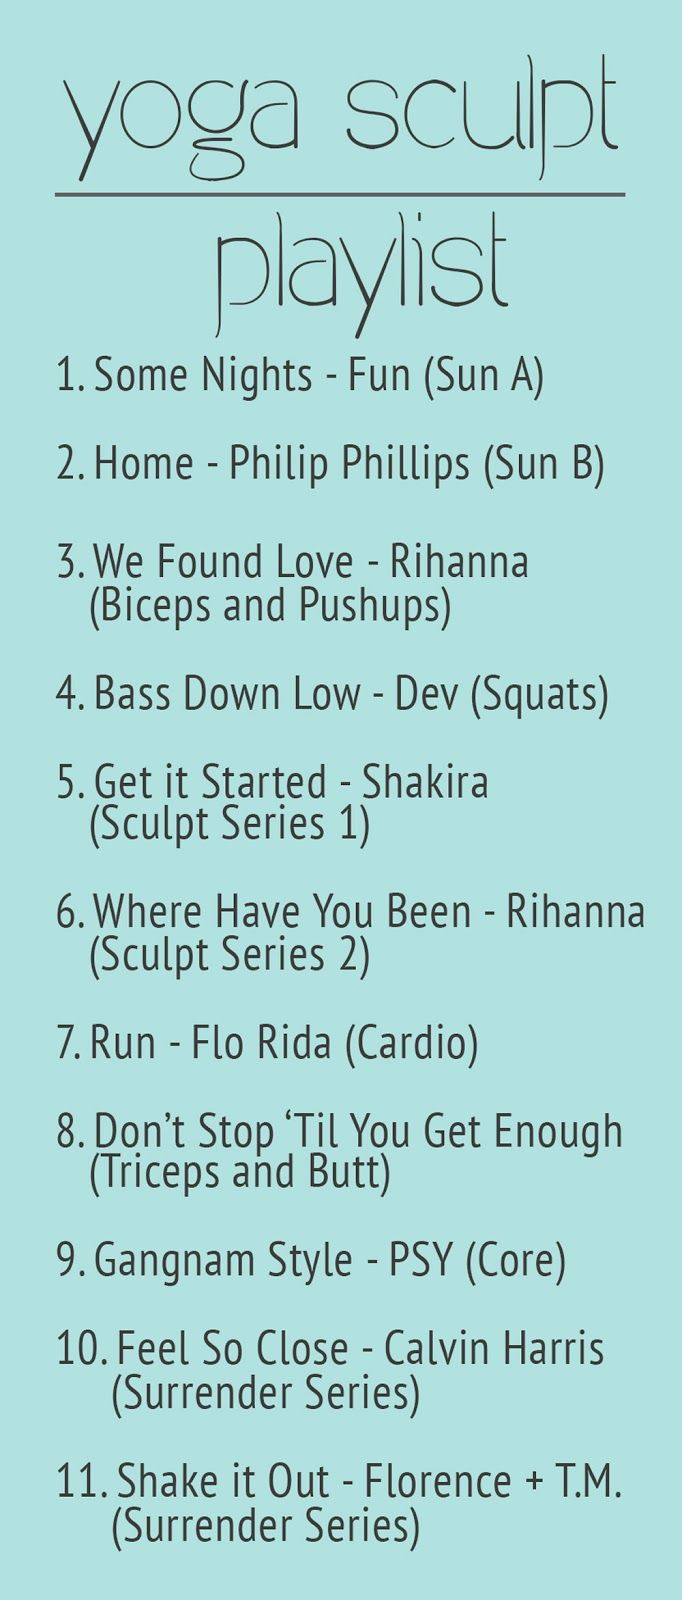 Fit Foodie Finds: Yoga Sculpt Playlist Expand yourself through sound!